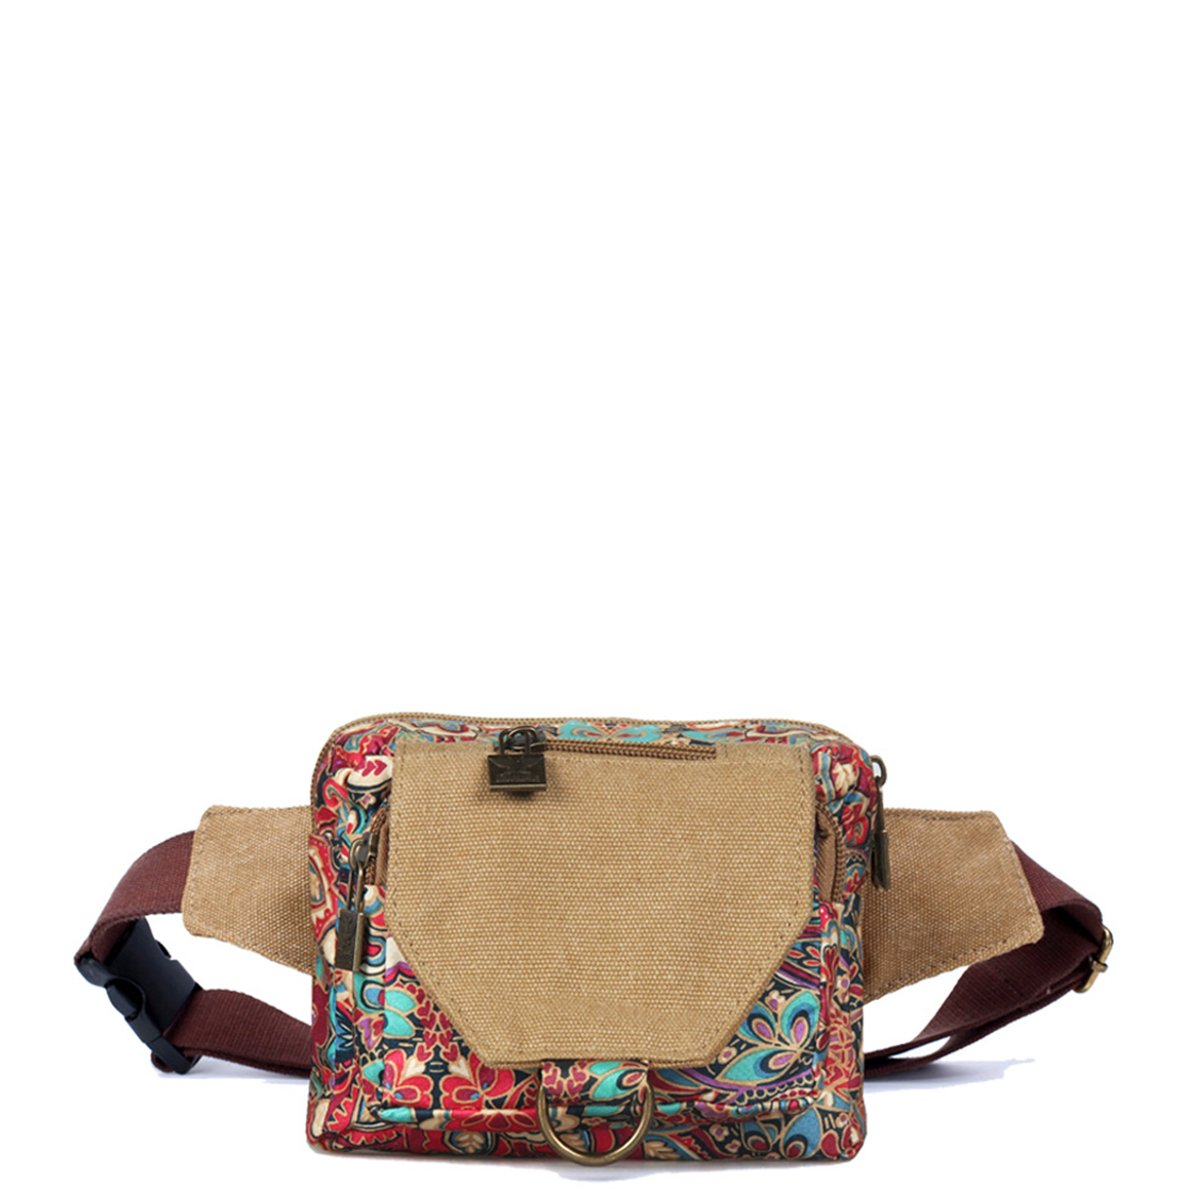 Womens small canvas bag sports bag waist bag wallet for travel sports outdoor,a